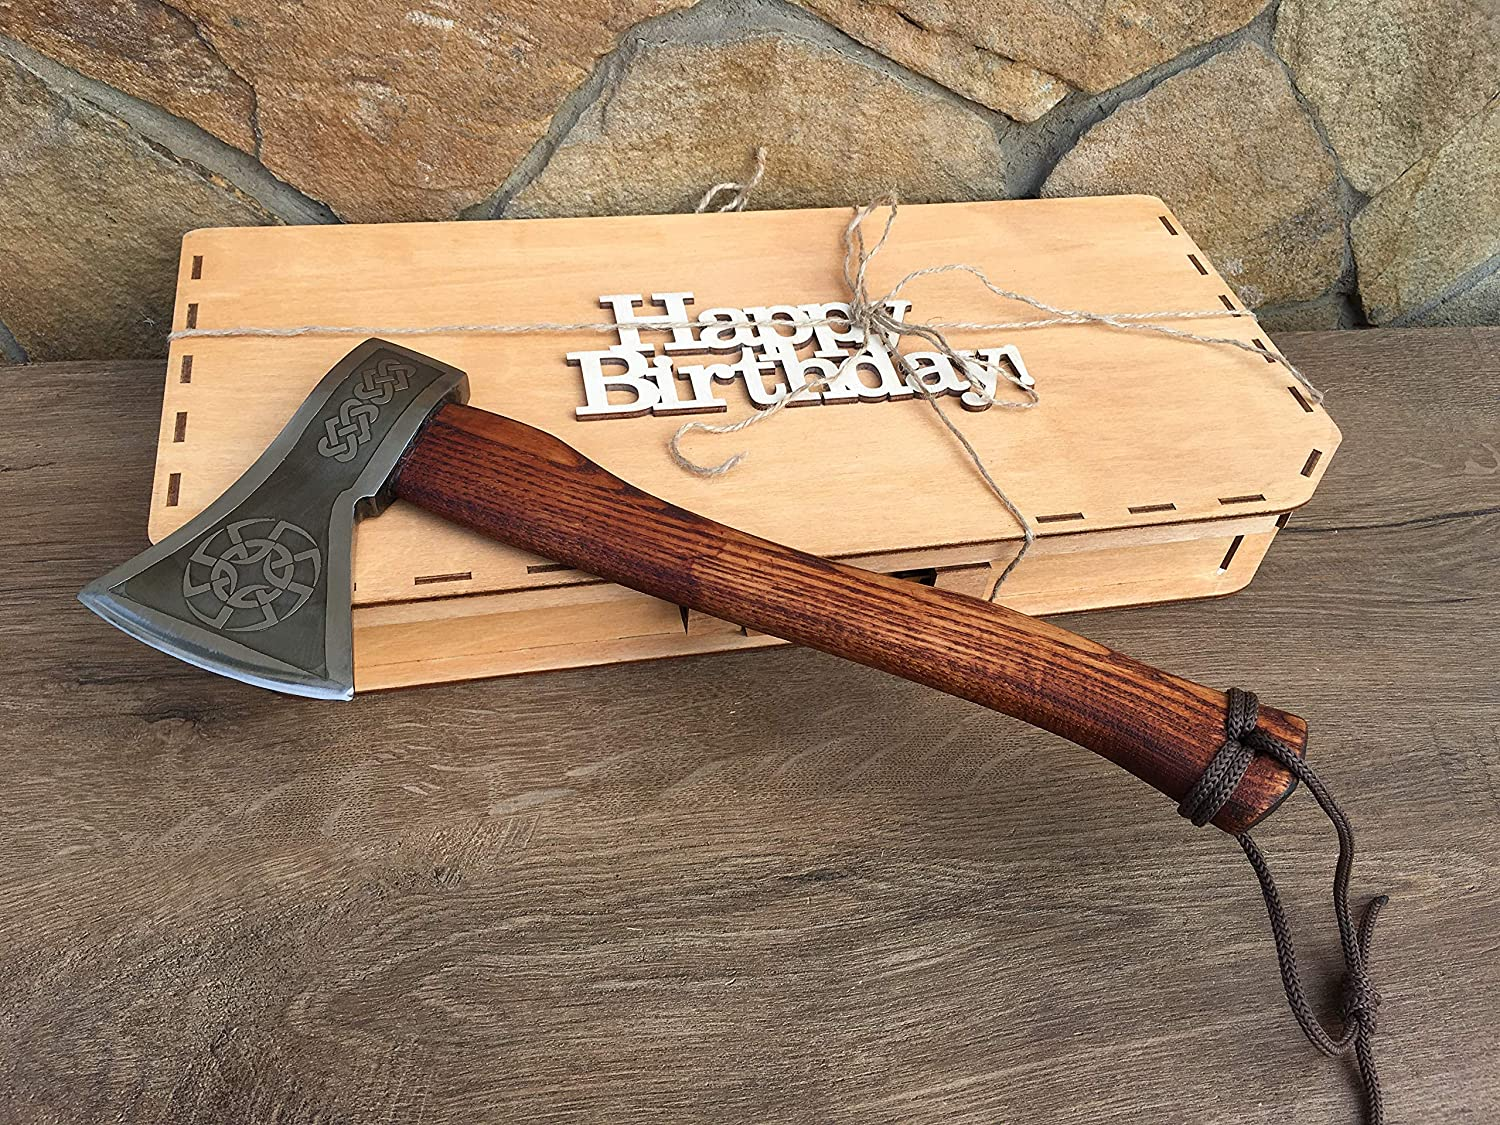 iron gifts steel 11th anniversary Mens gift anniversary gift steel gifts for men viking axe axe tomahawk Kratos axe handyman tool